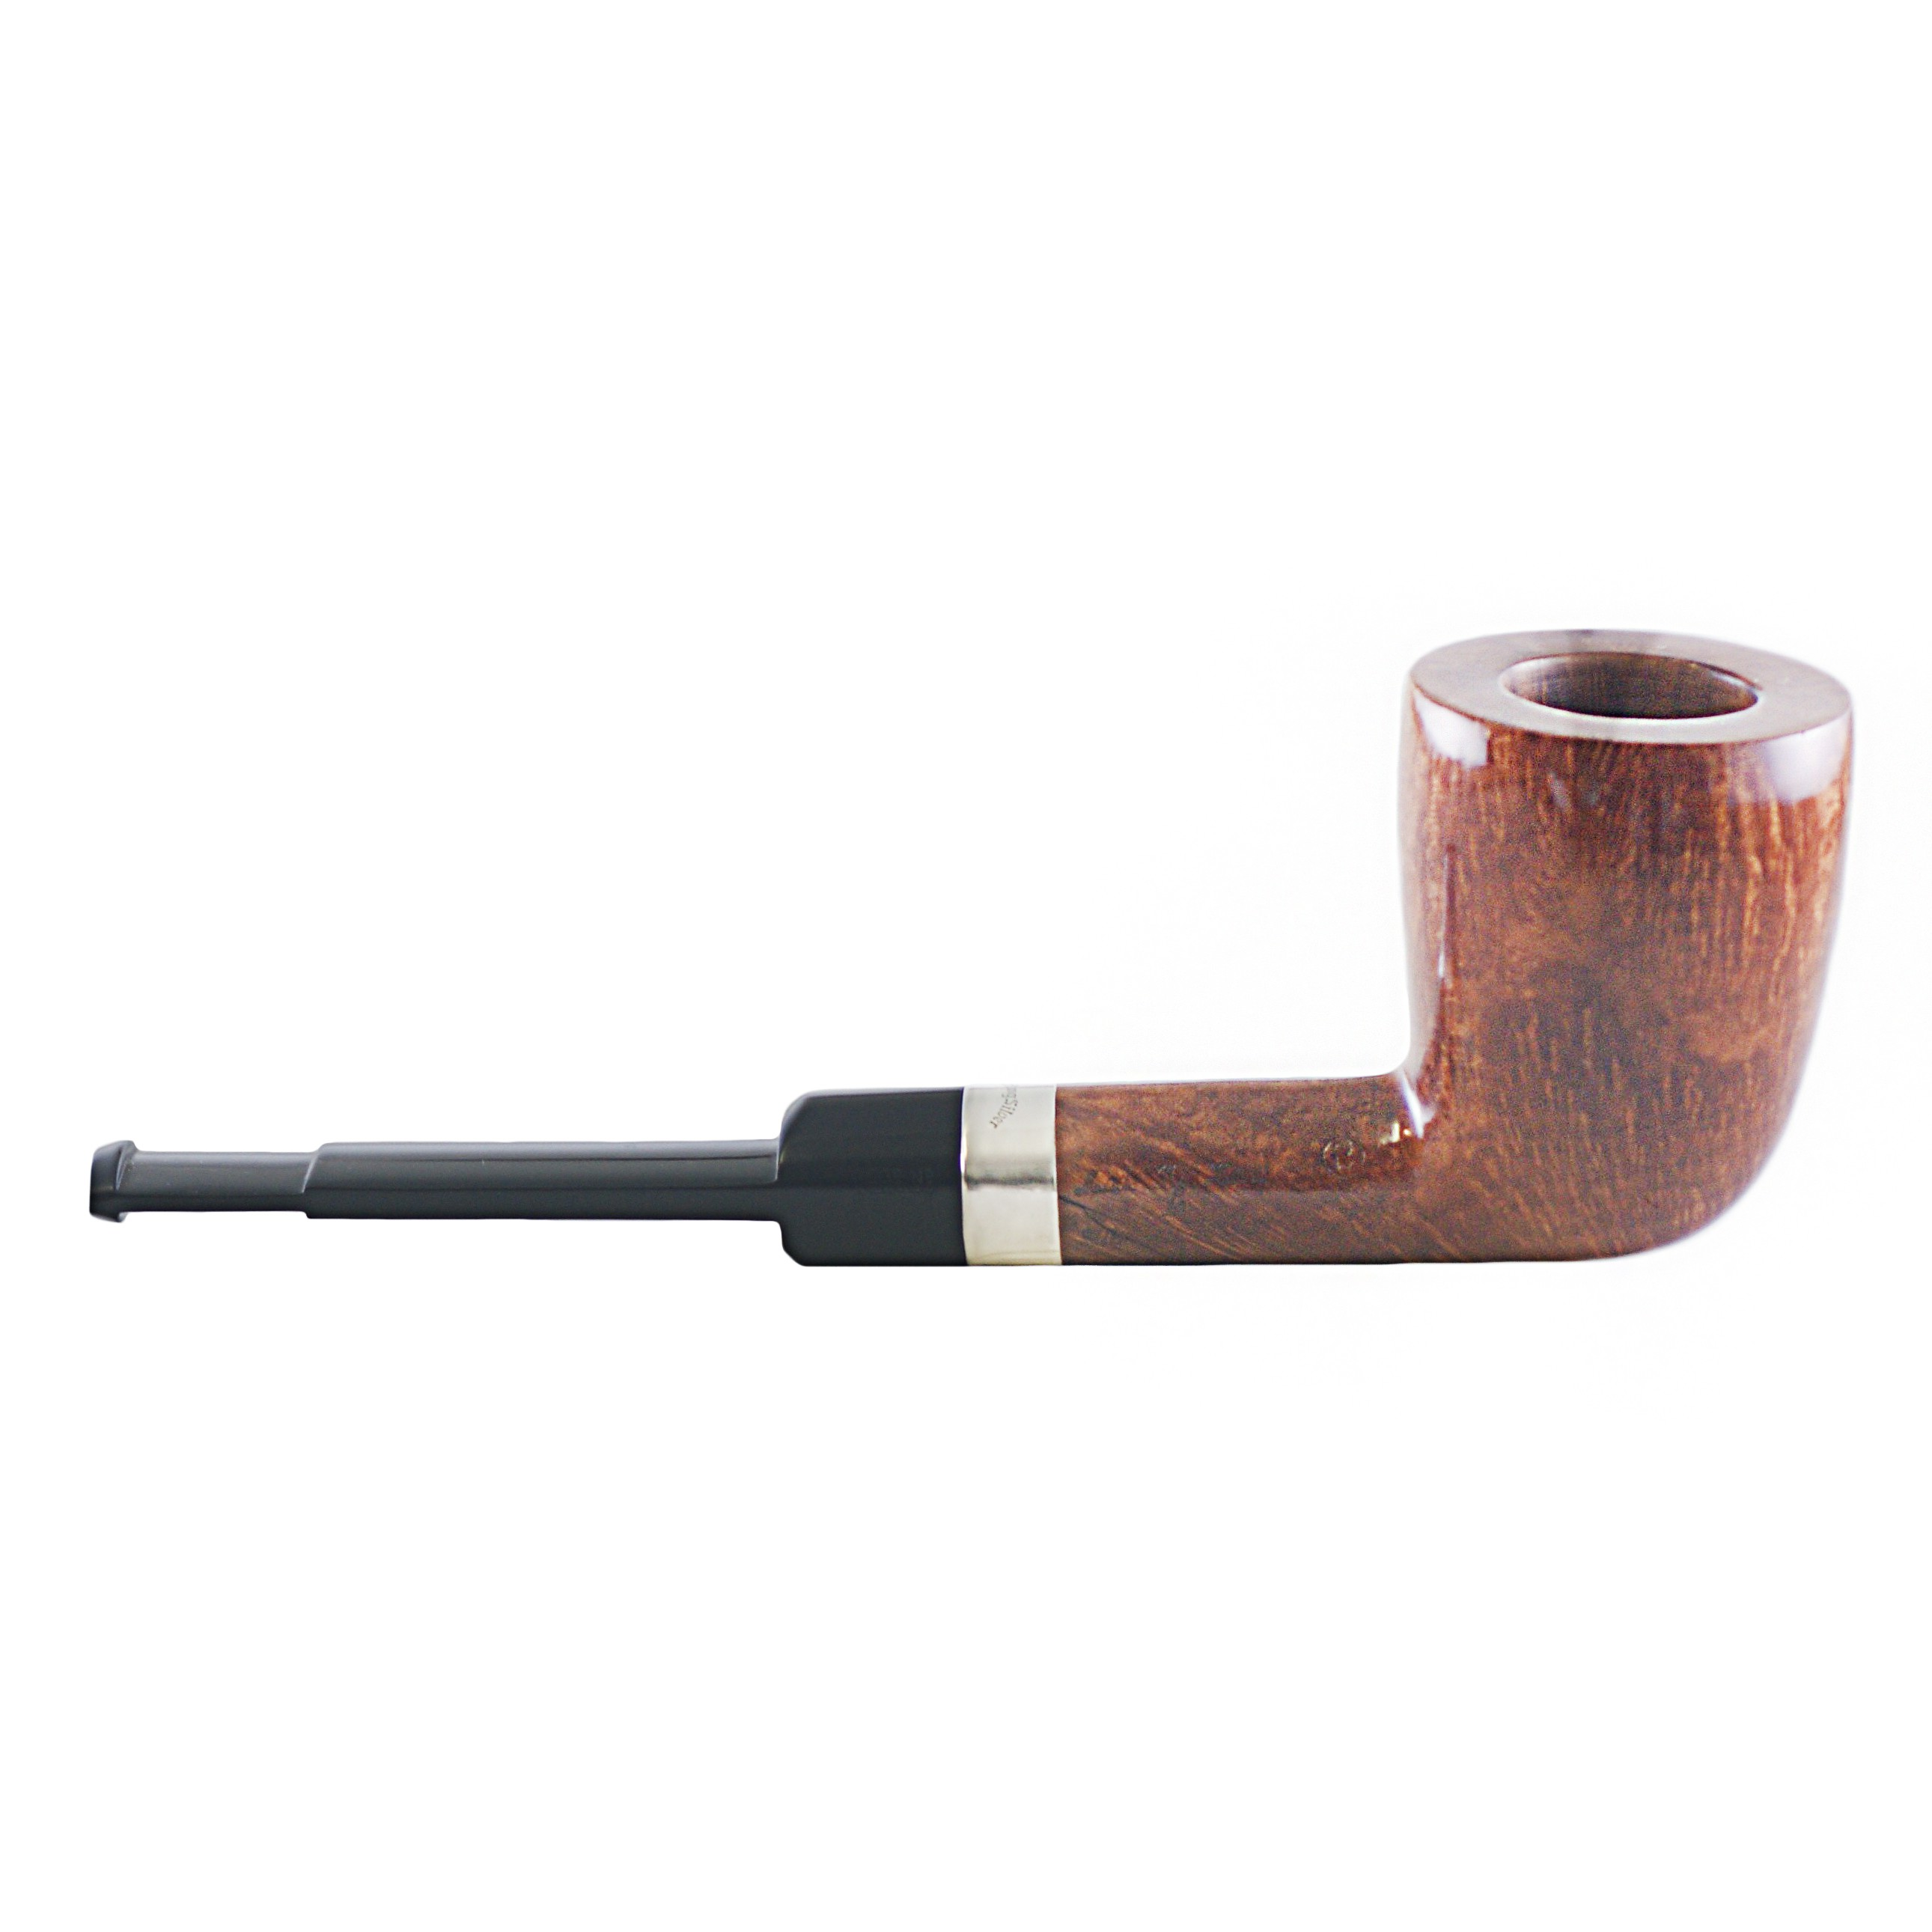 charatan pipes dating In the double comfort bit era (which appears to be late 1950s on up to the present), you can find charatans with: ### and no letter at all: the pipe was a taper stem.